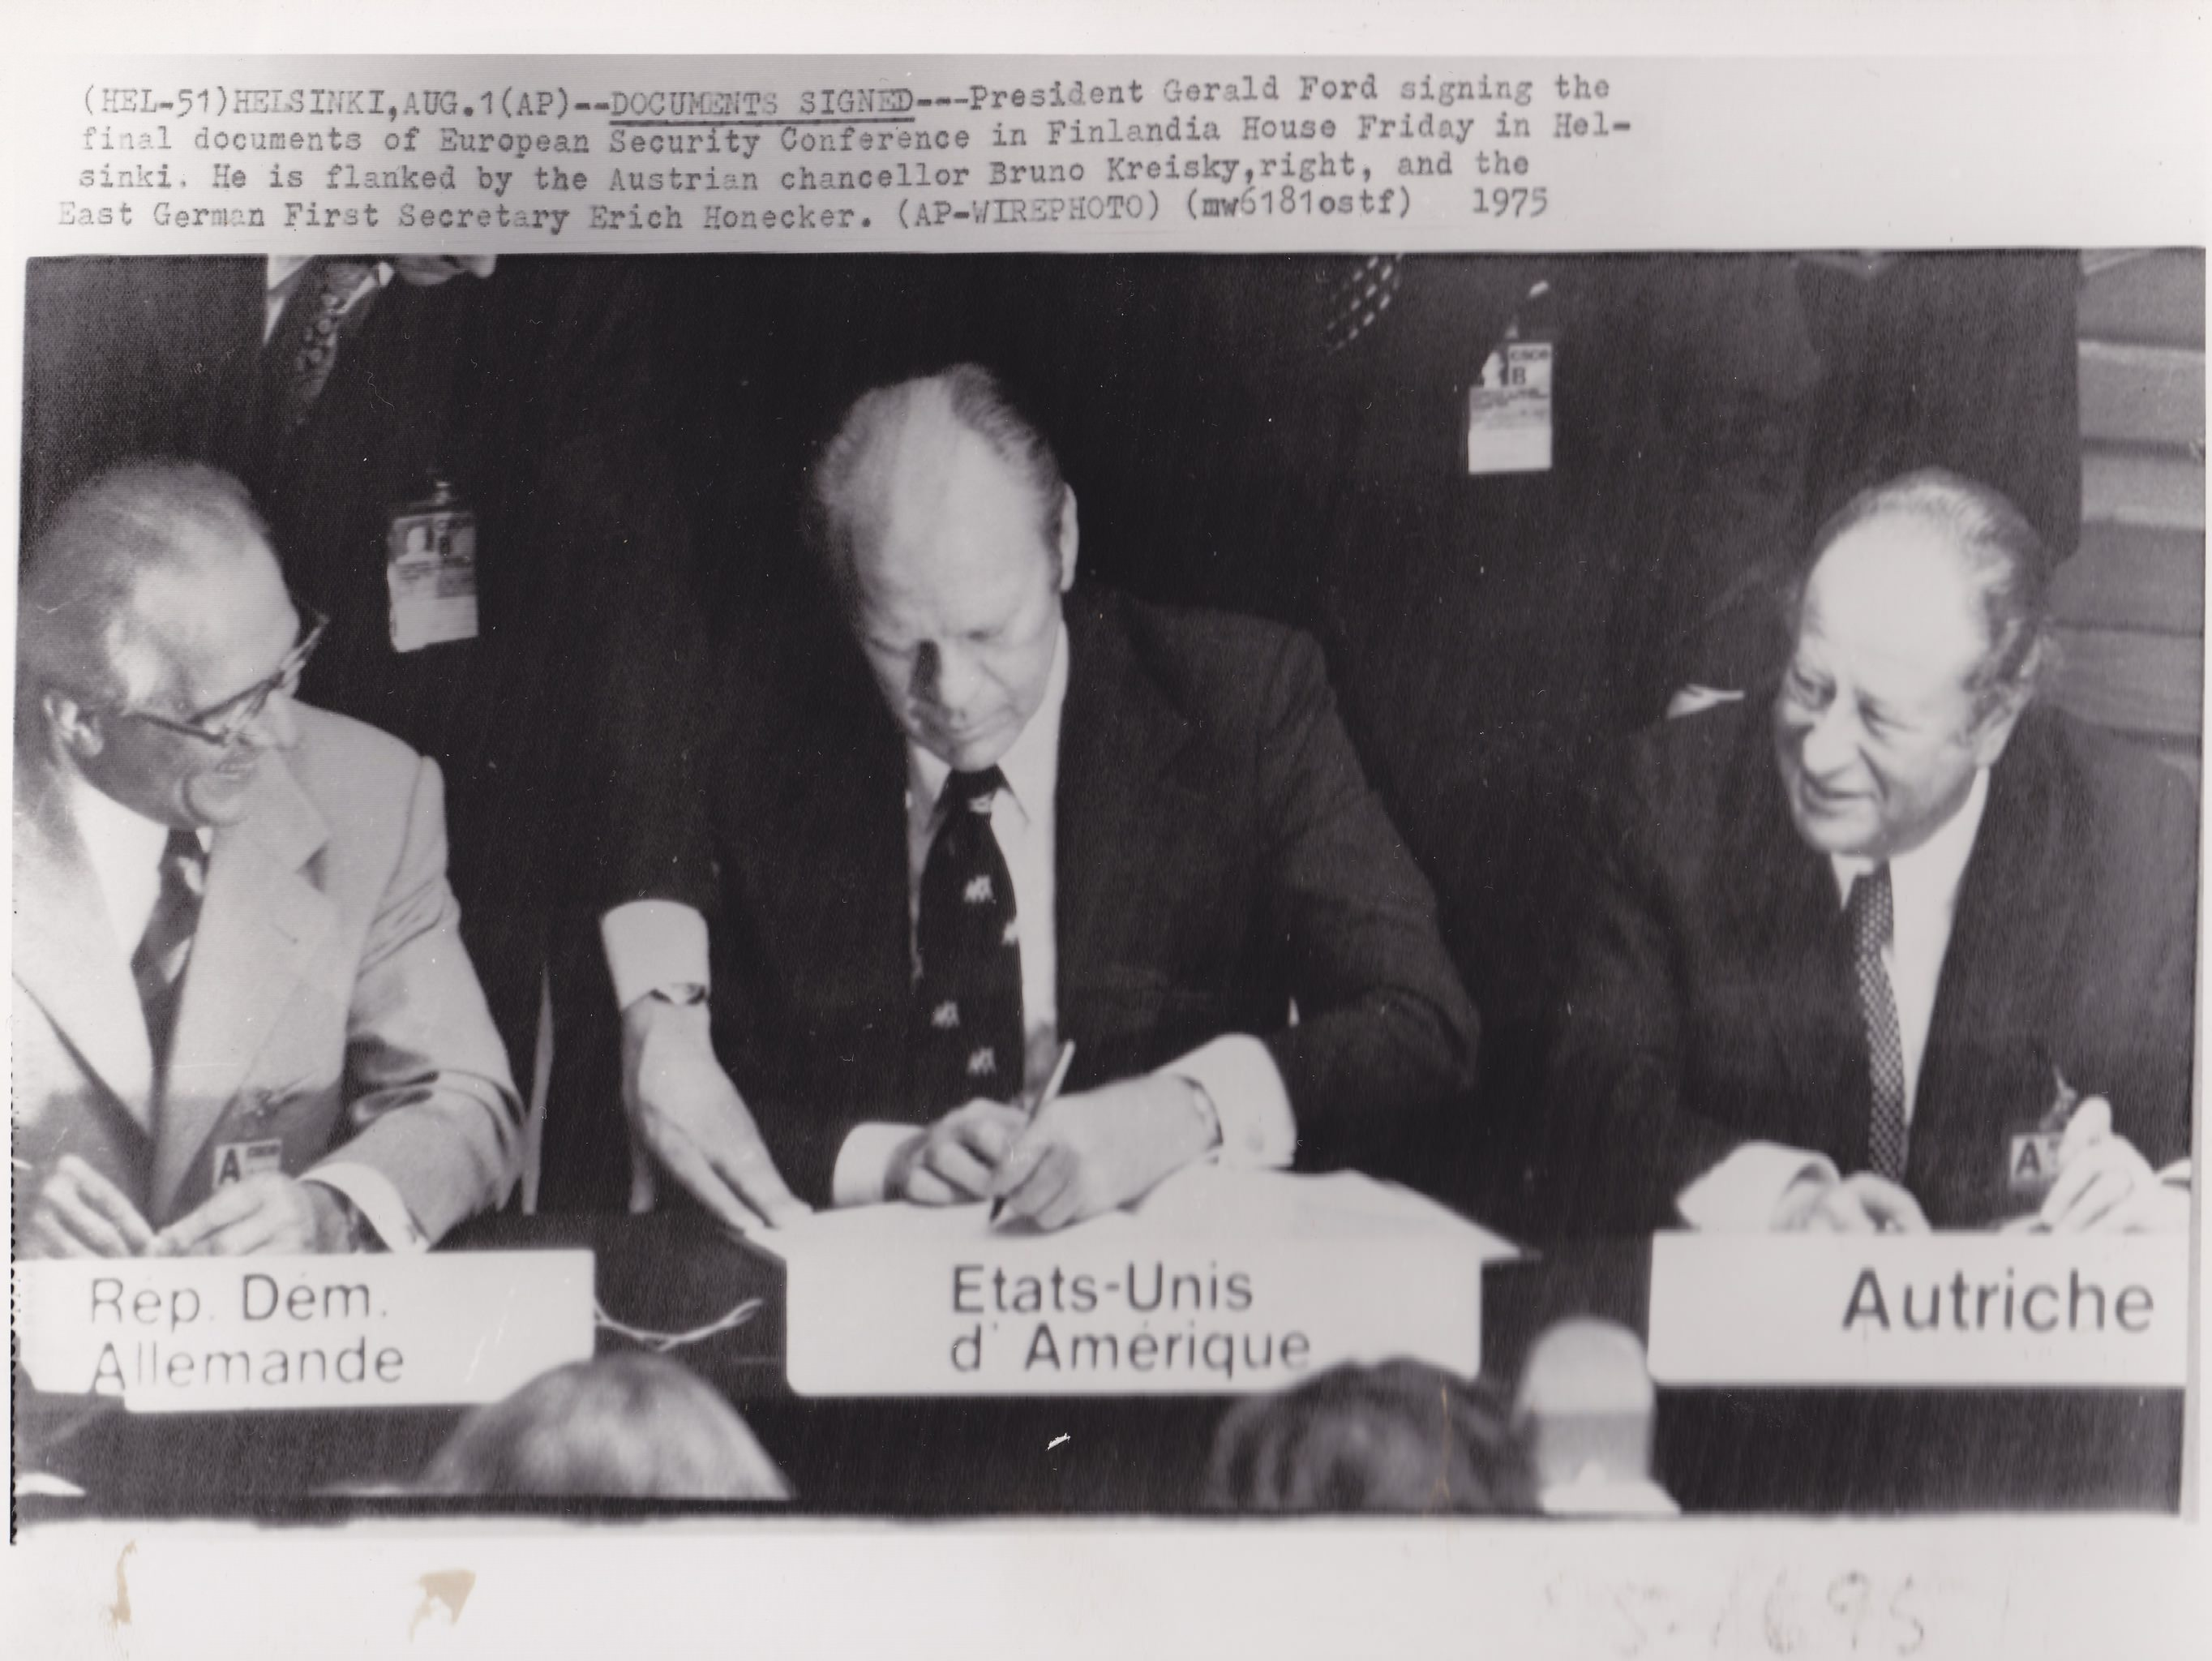 Signers of the 1975 Helsinki Accords in Finland include East German General Secretary Erich Honecker (left), U.S. President Gerald Ford (center) and Austrian Chancellor Bruno Kreisky (right).